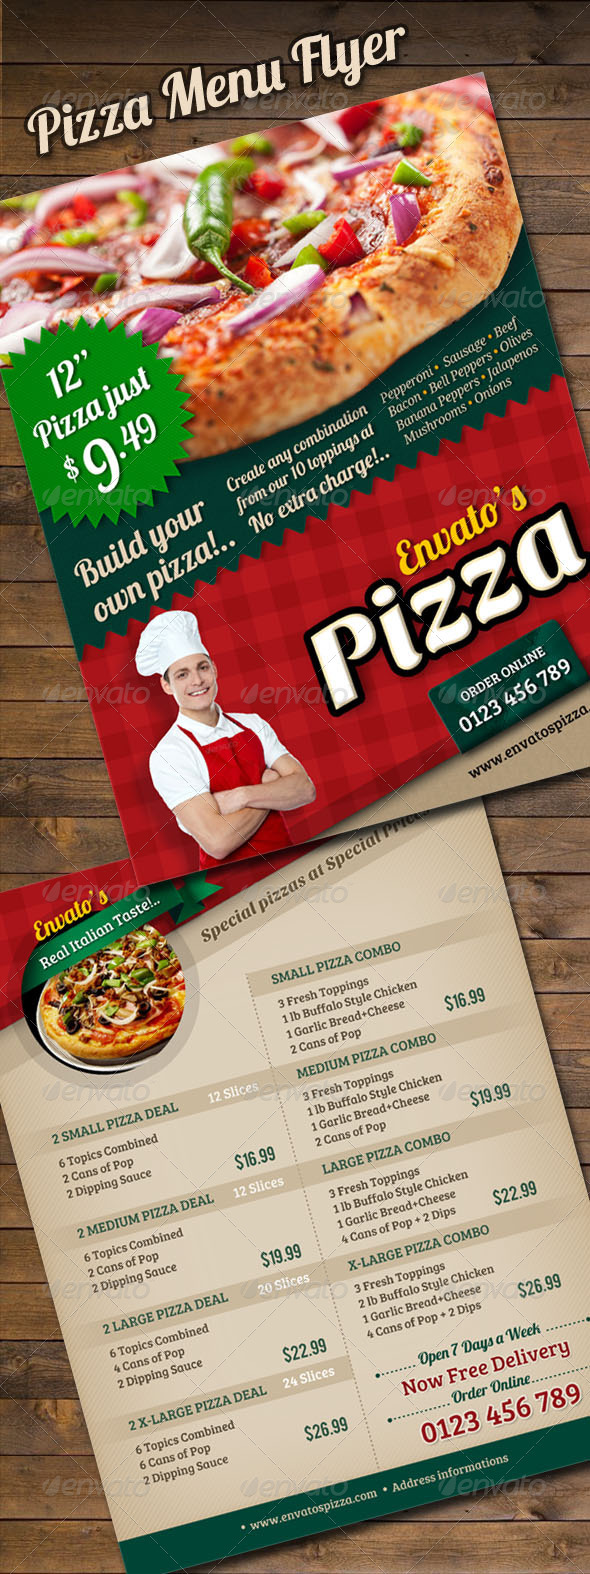 Pizza Menu Flyer - Restaurant Flyers